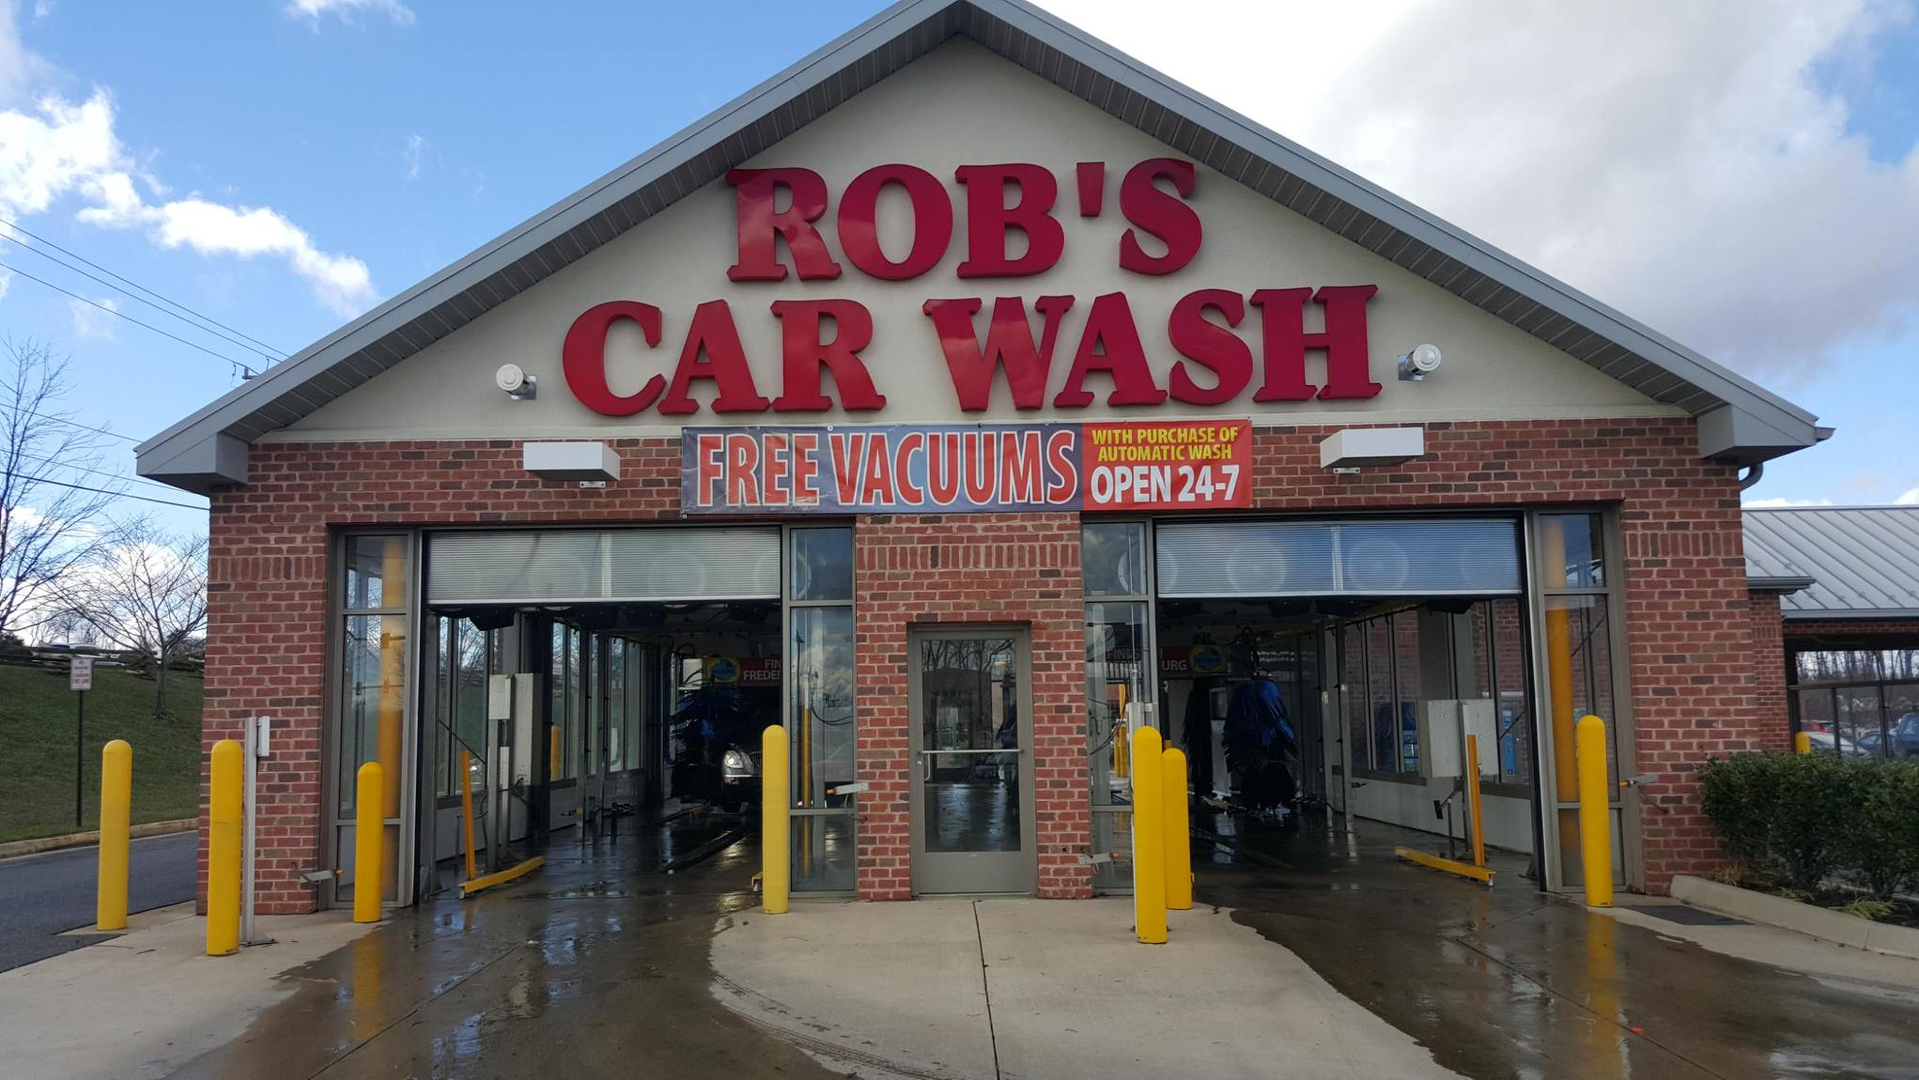 24 7 Automated Car Wash 24 7 Self Service Car Wash Rob S Car Wash